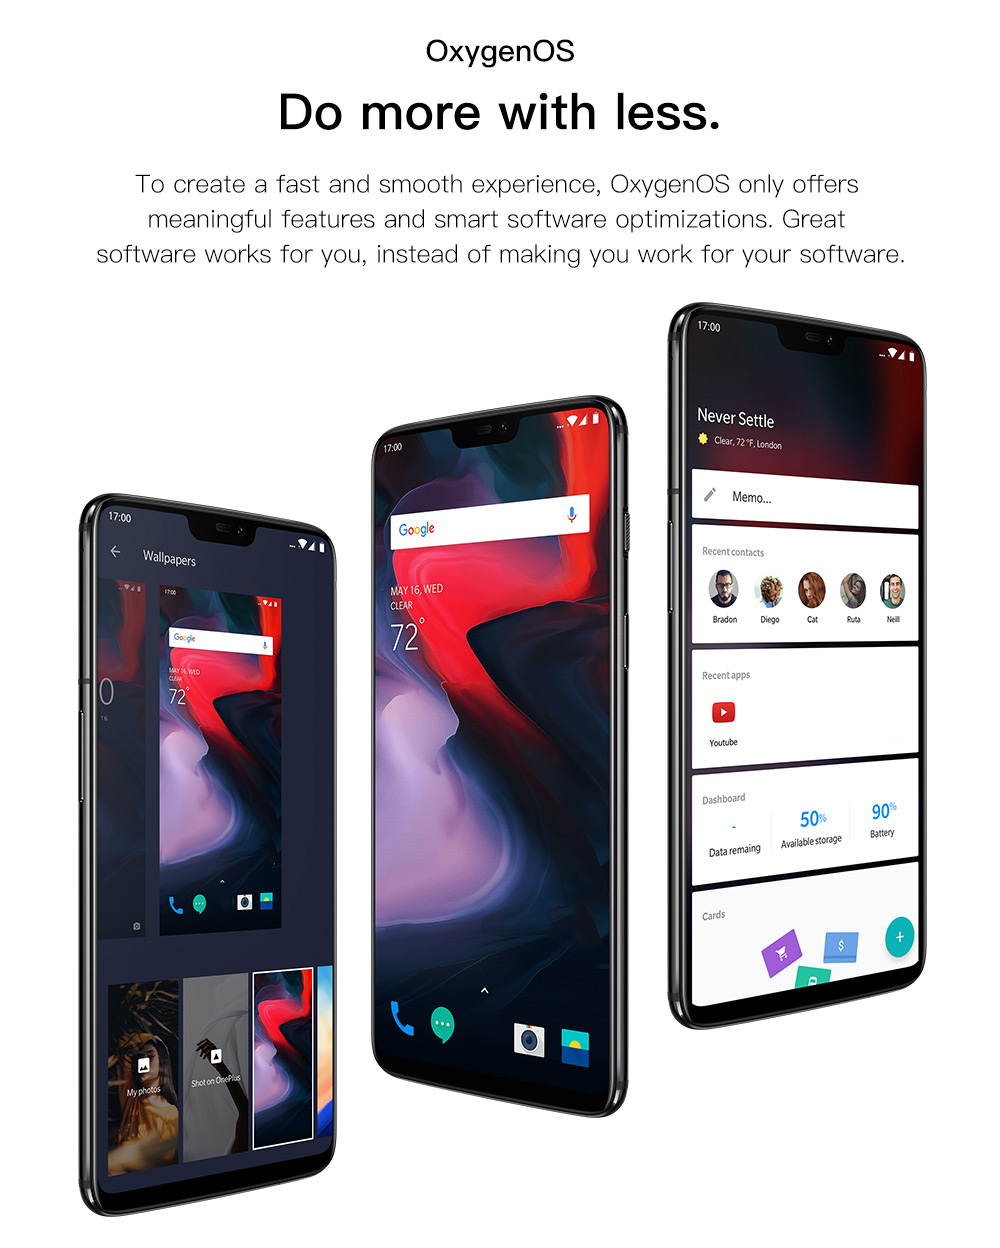 Oneplus 6 4g Phablet 6gb Ram International Version 61062 Free Xiaomi Pocophone F1 64gb Garansi Resmi Tam 628 Inch Android 81 Snapdragon 845 Octa Core 28ghz